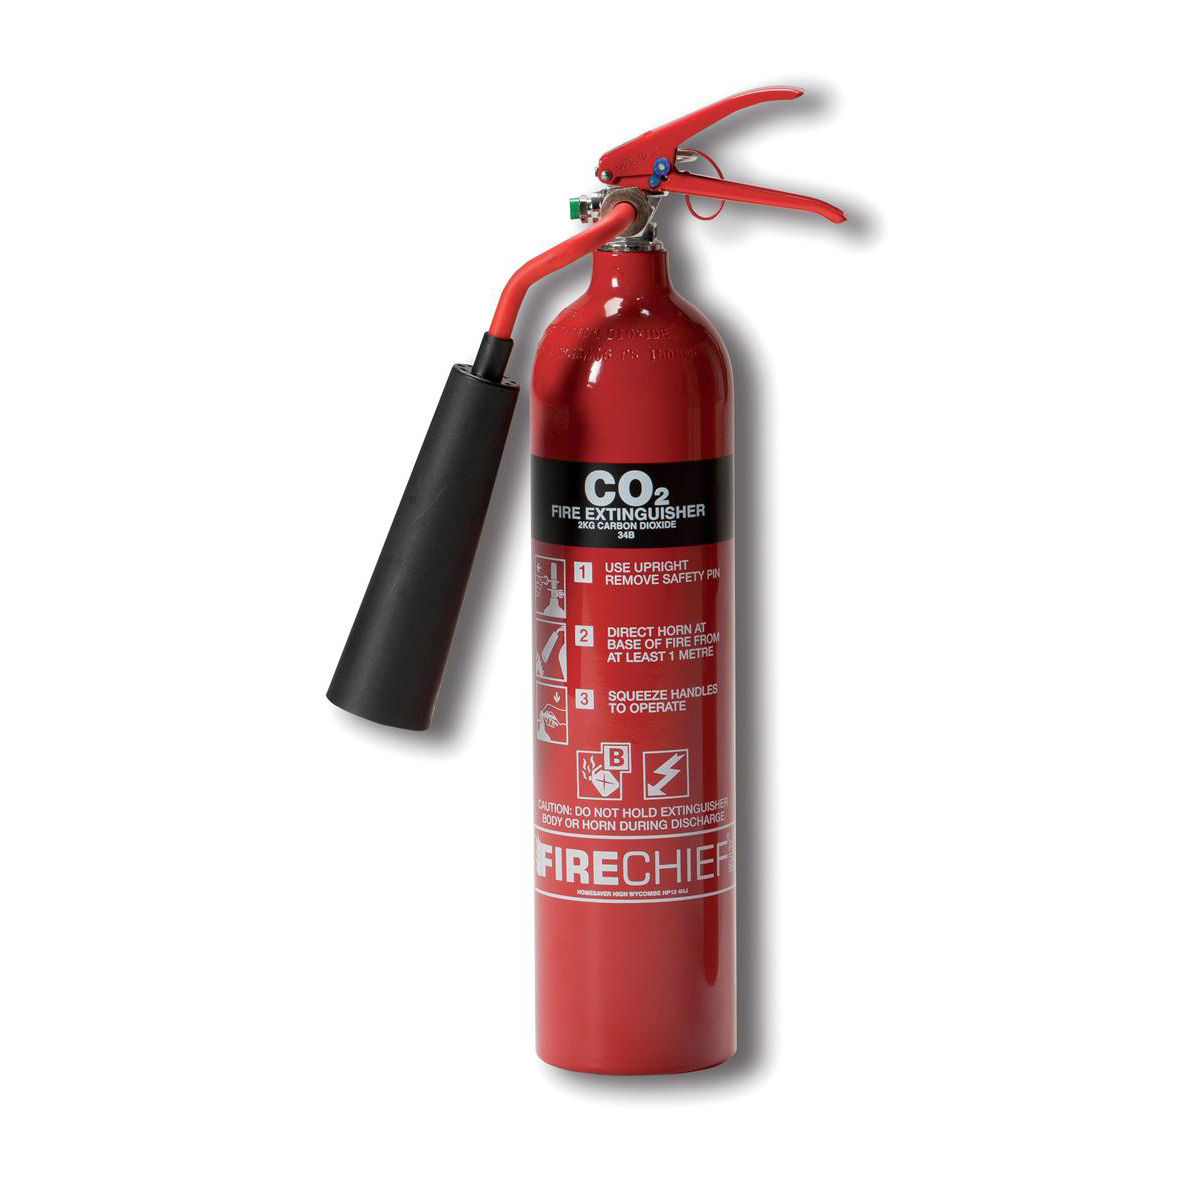 Co2 Firechief 2.0KG CO2 Fire Extinguisher for Class A B and E Fires Ref WG10128